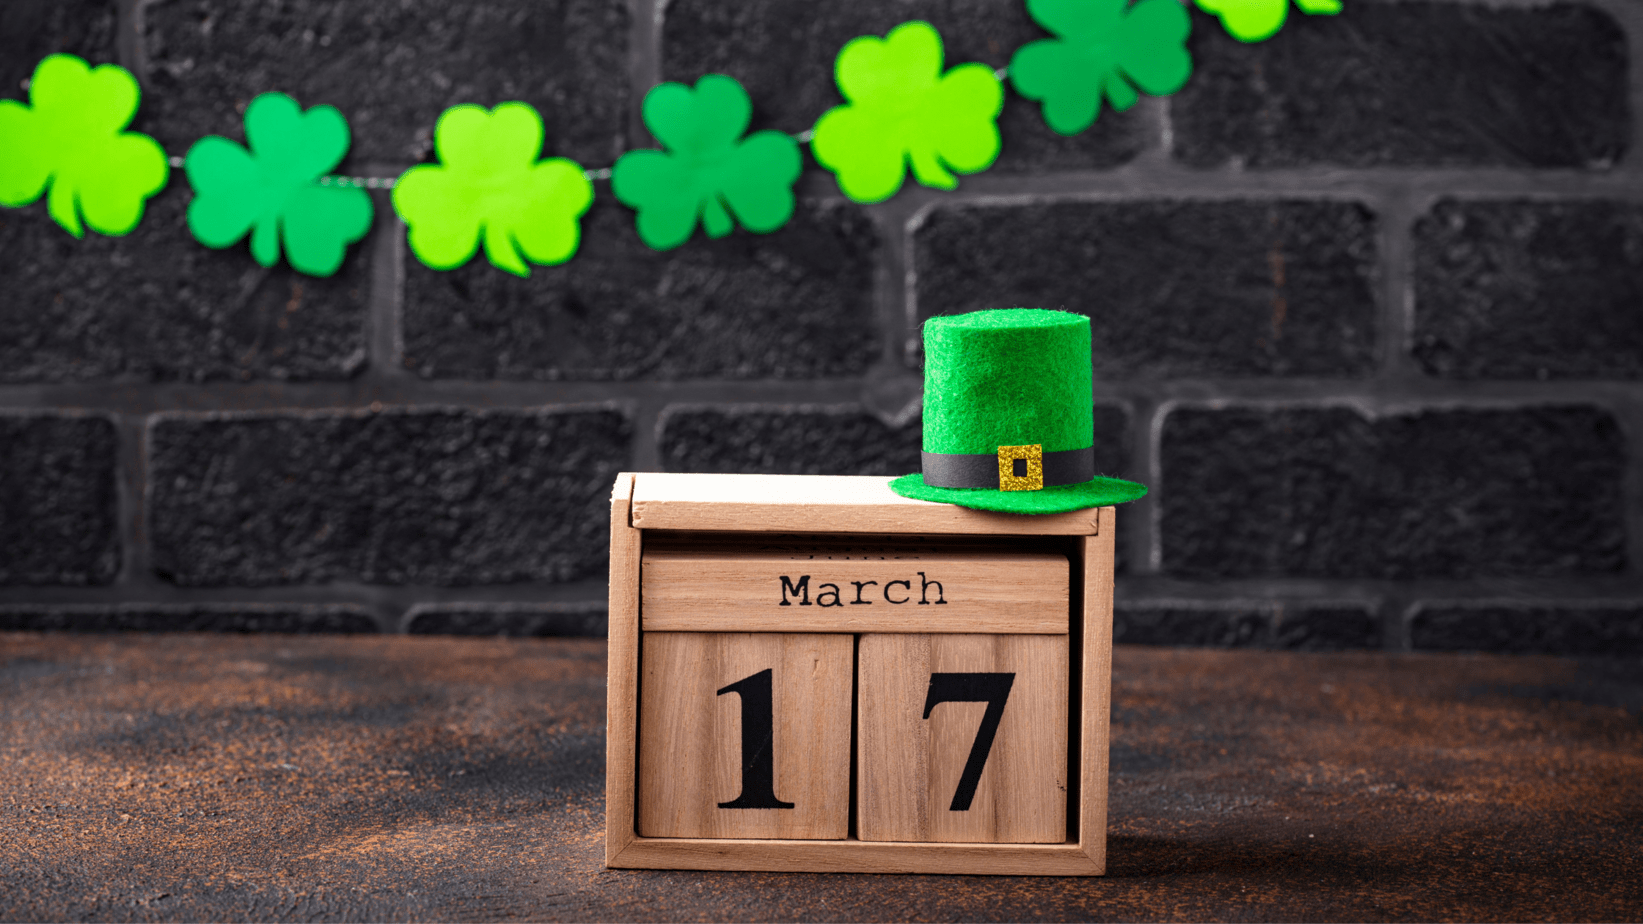 The world going green for St Patrick's day 2021